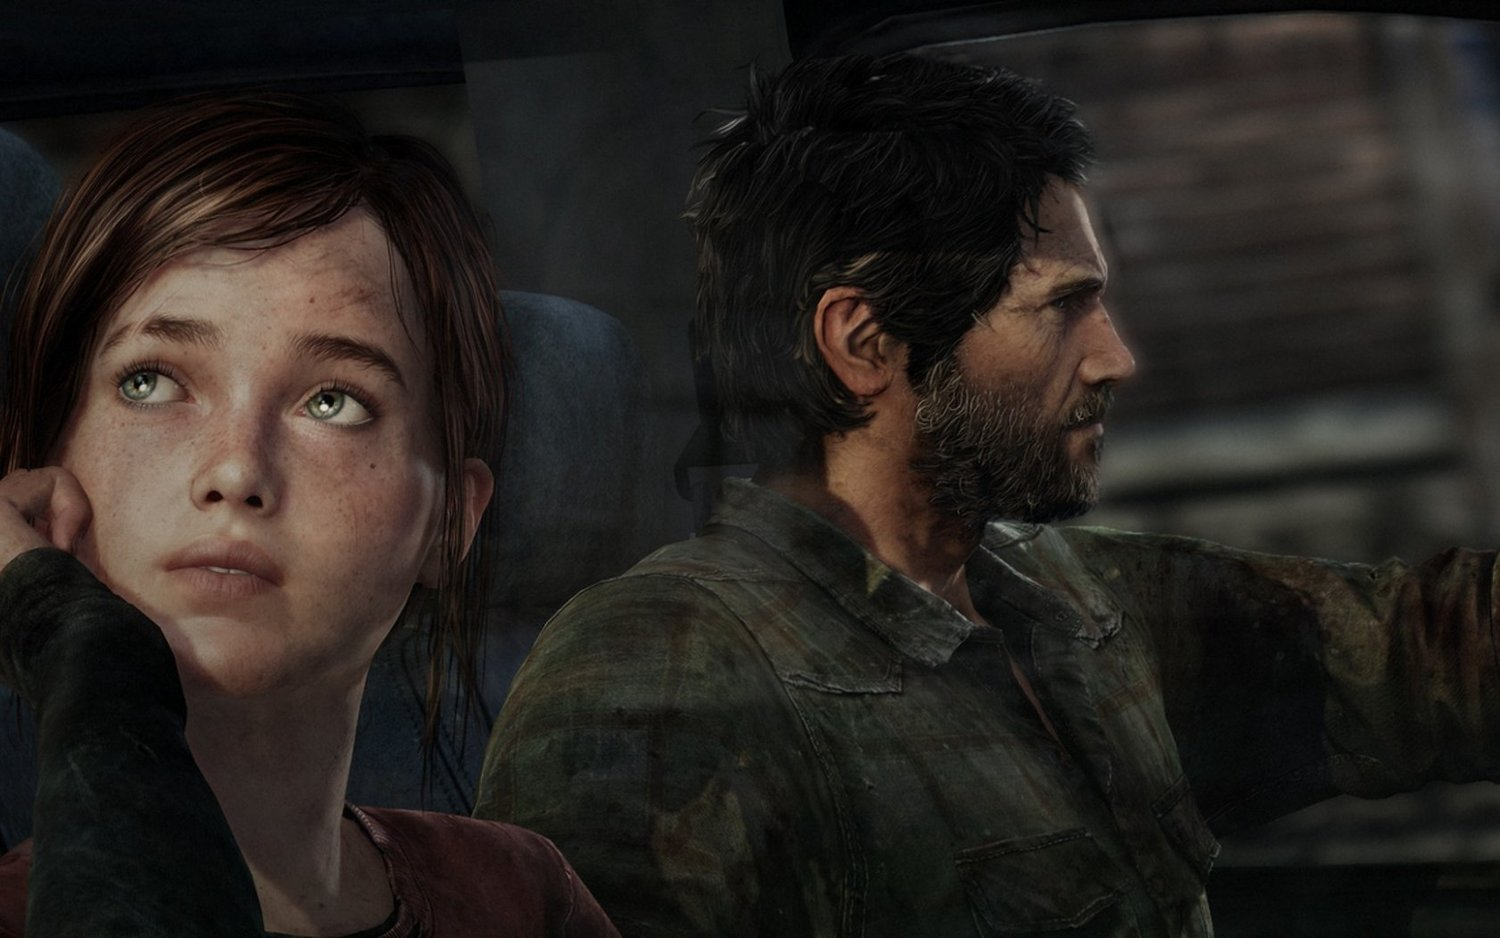 rsz_video_games_naughty_dog_playstation_3_the_last_of_us_joel_ellie_sony_computer_entertainment_1680x1050